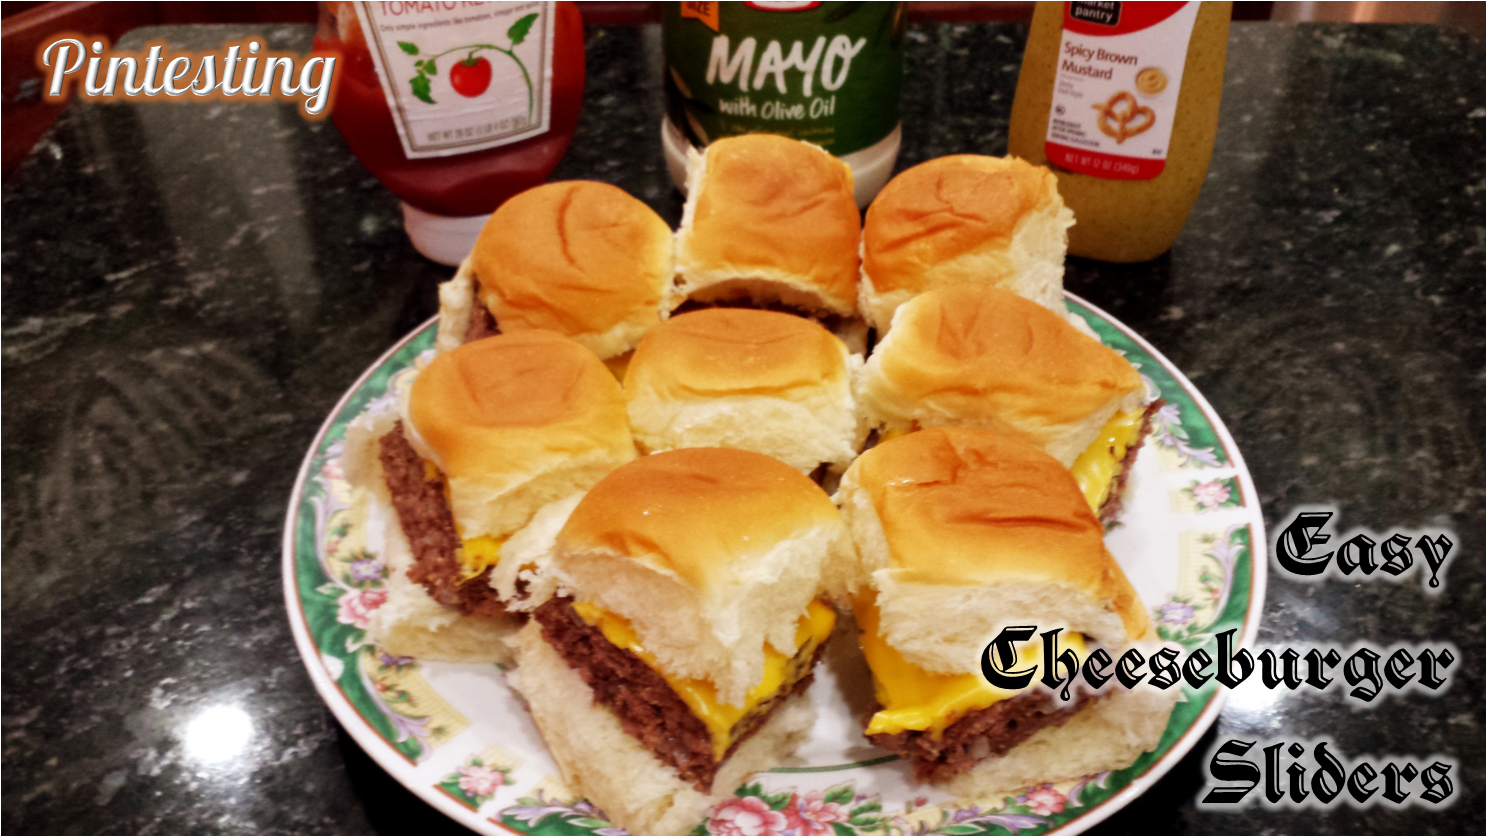 Pintesting Easy Cheeseburger Sliders